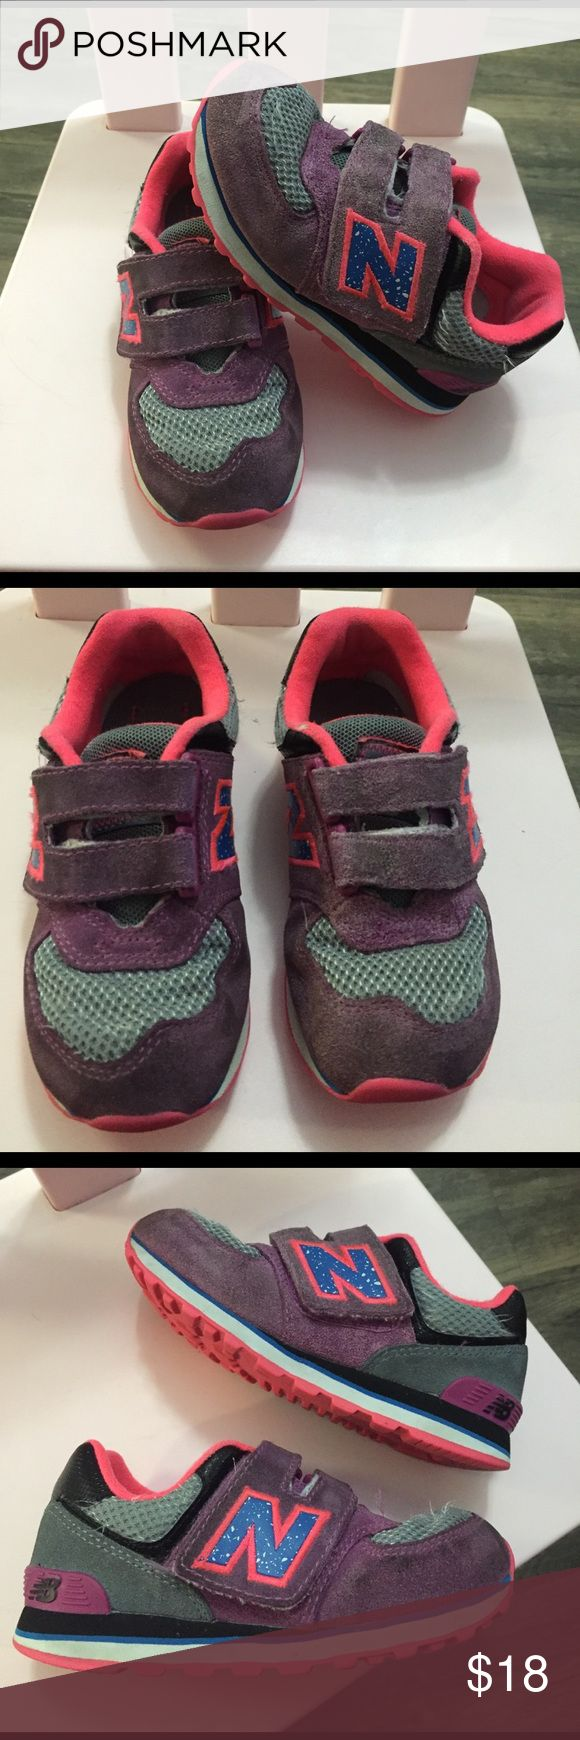 New Balance Toddler Sneakers Good condition sneakers with strap. Very cute sneakers for girl, they're a bit dirty but please see pics for condition. Offers welcomed! New Balance Shoes Sneakers